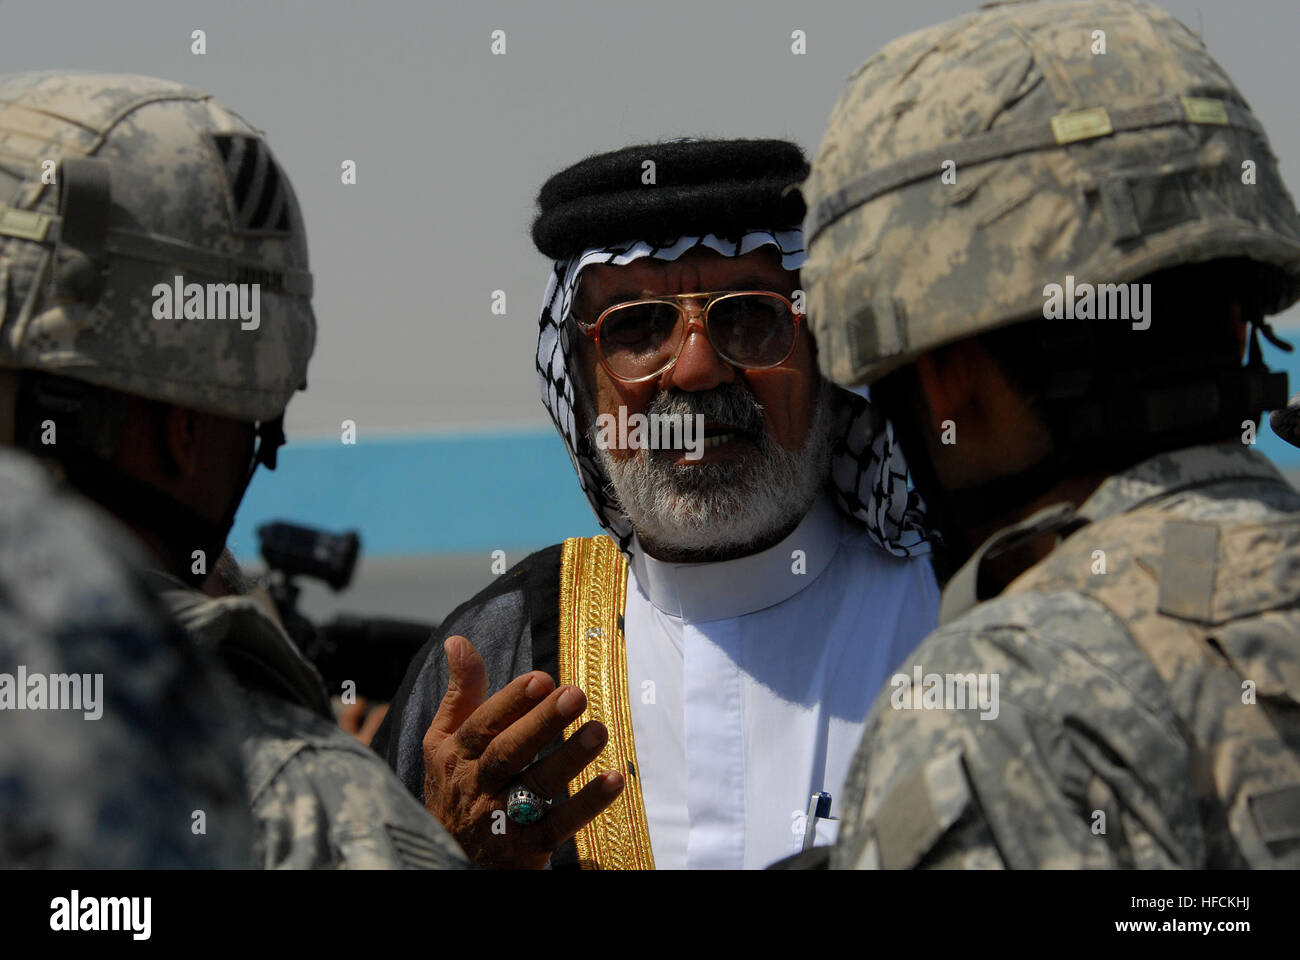 Abu Sabah, a respected local, speaks to U.S. Army Lt. Col. Johnnie Johnson, with Personal Security Detachment, 4 - Stock Image